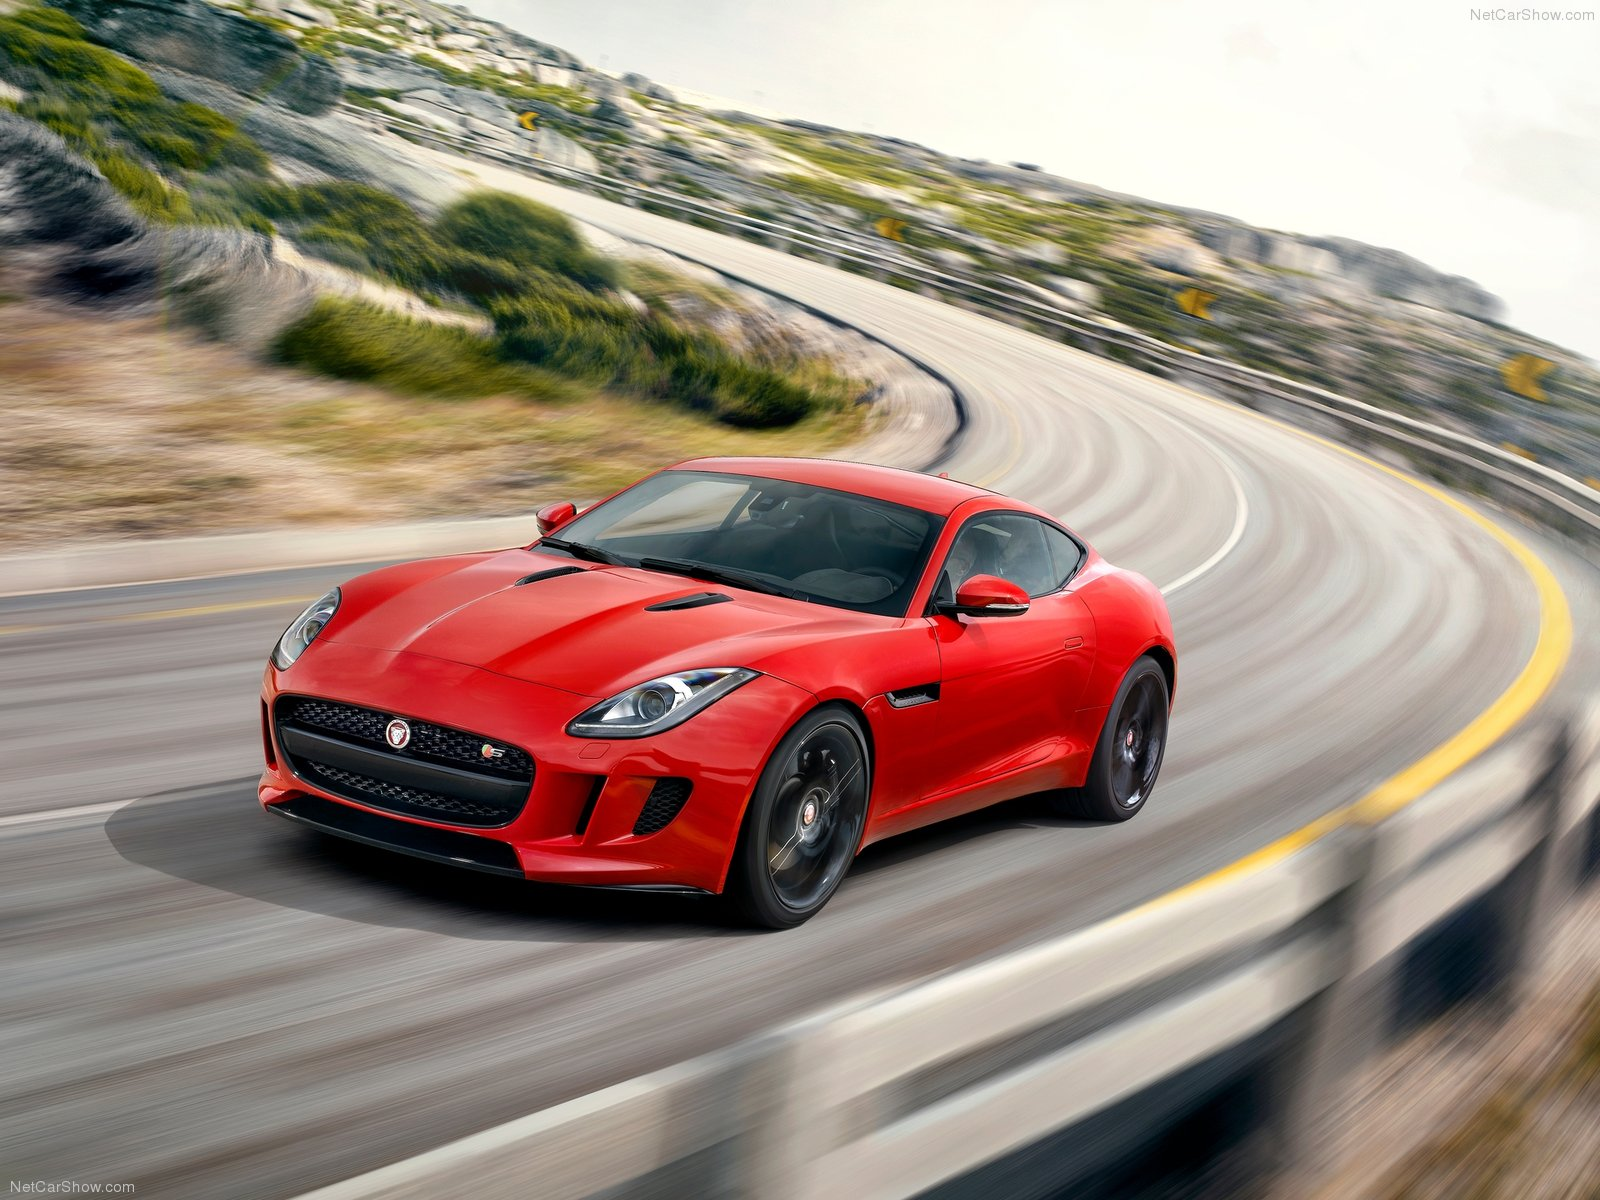 jaguar f-type coupe picture # 106976 | jaguar photo gallery